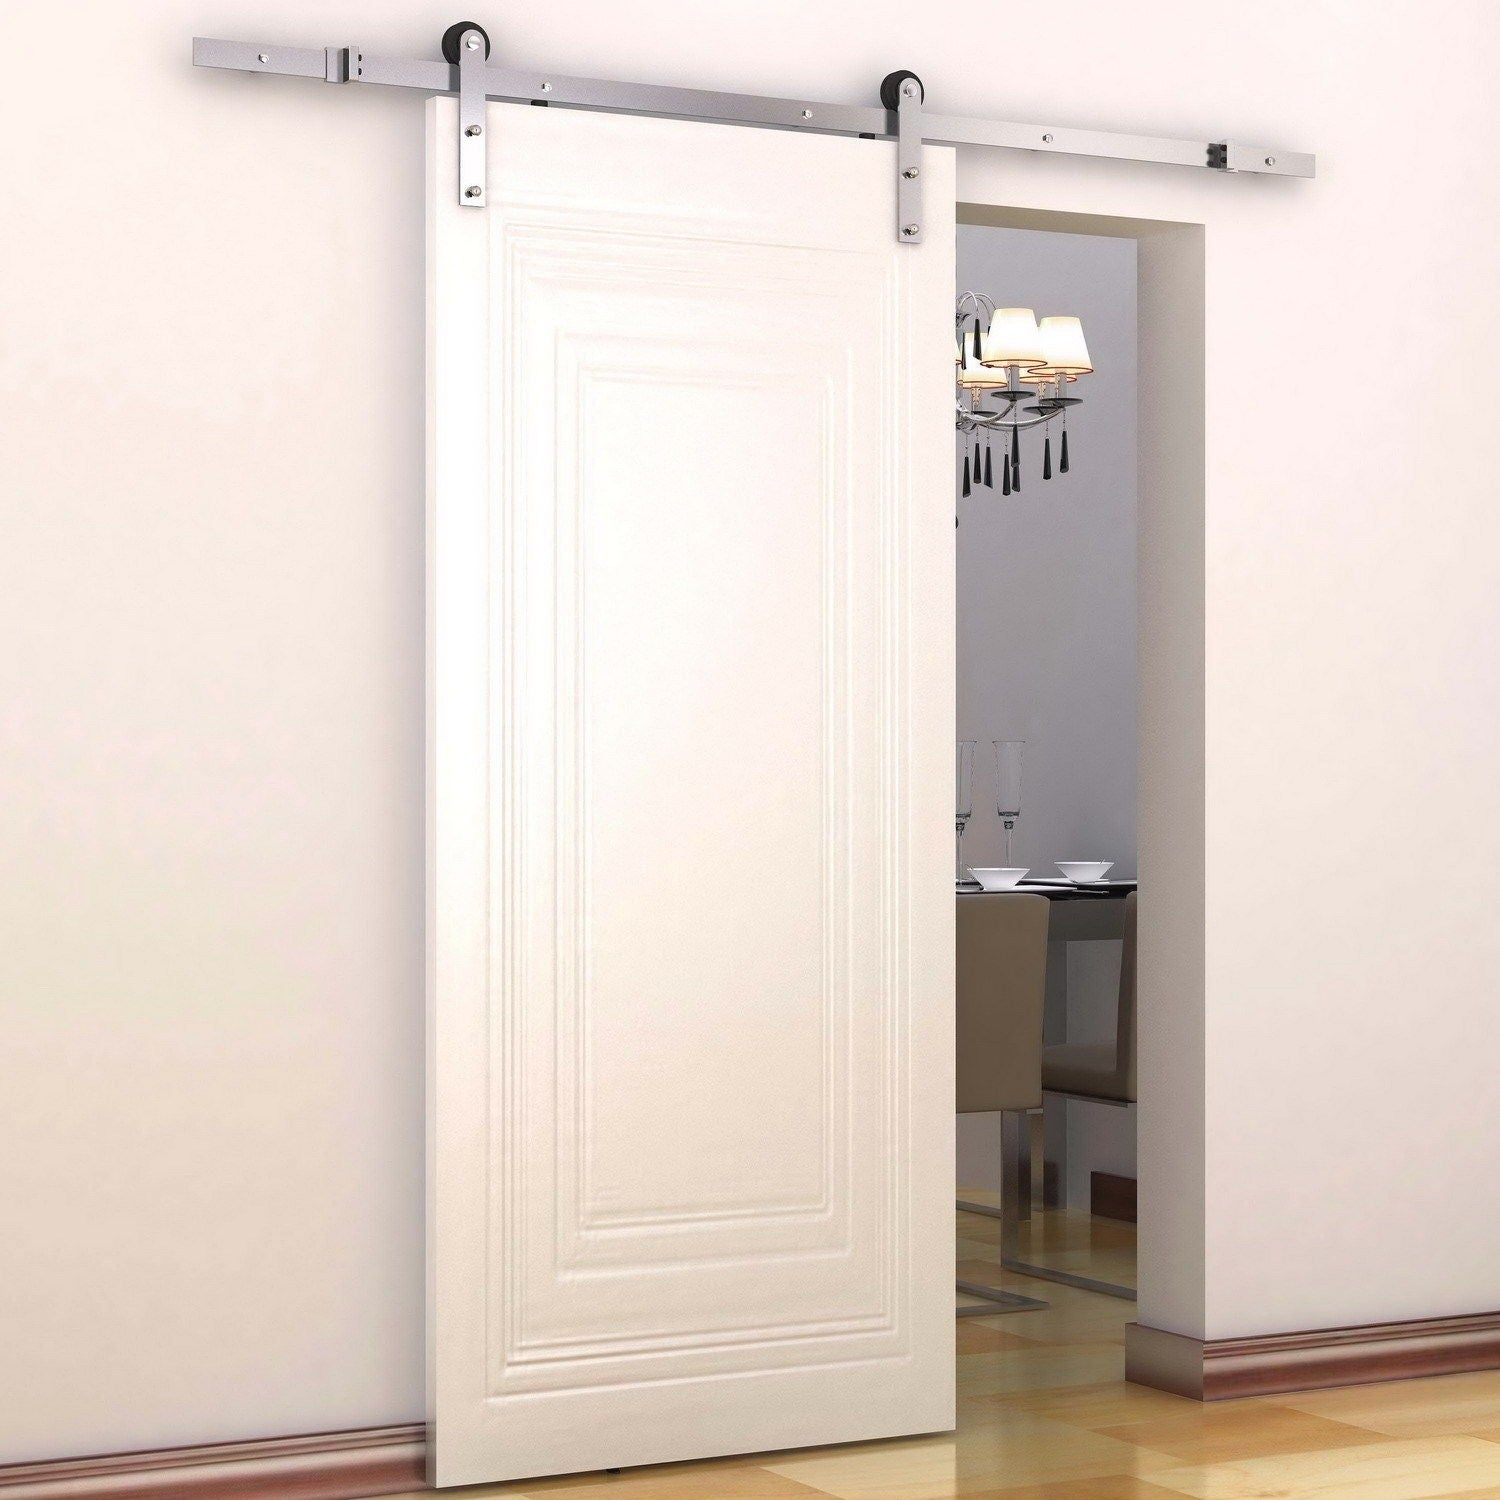 kit barns interior hardware sliding kits doors barn track door